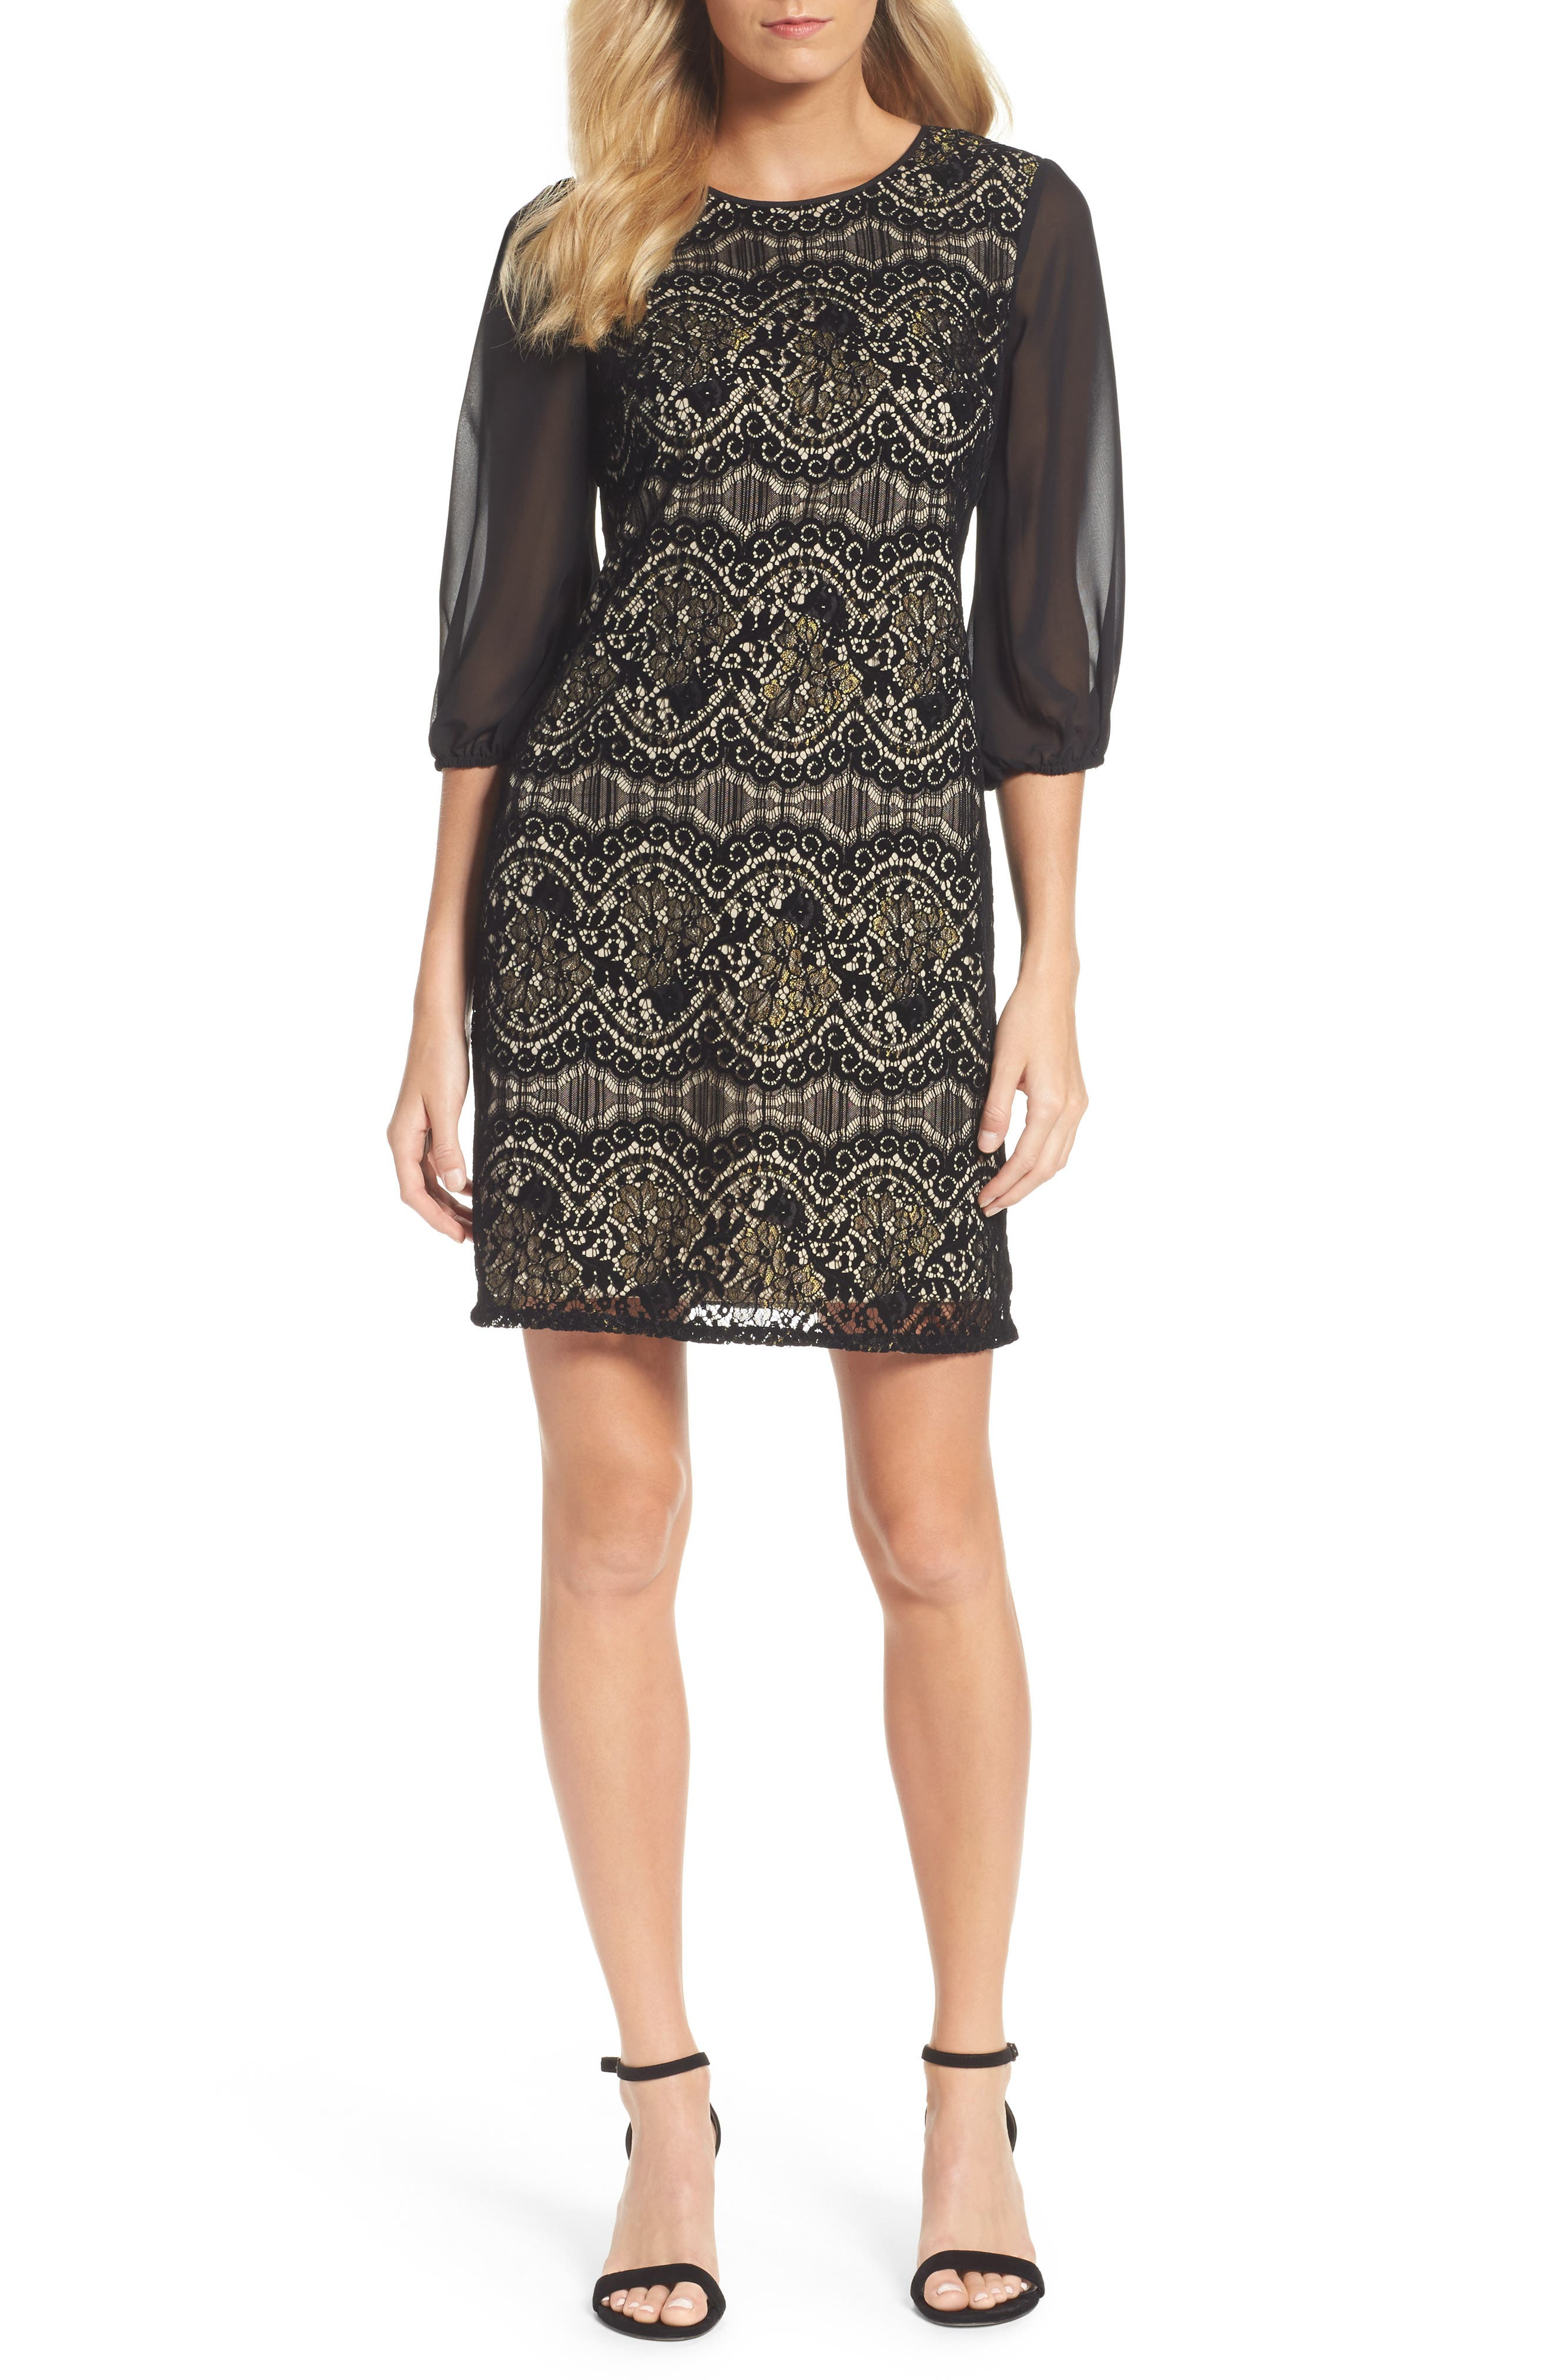 Alternate Image 1 Selected - Adrianna Papell Flocked Lace Shift Dress